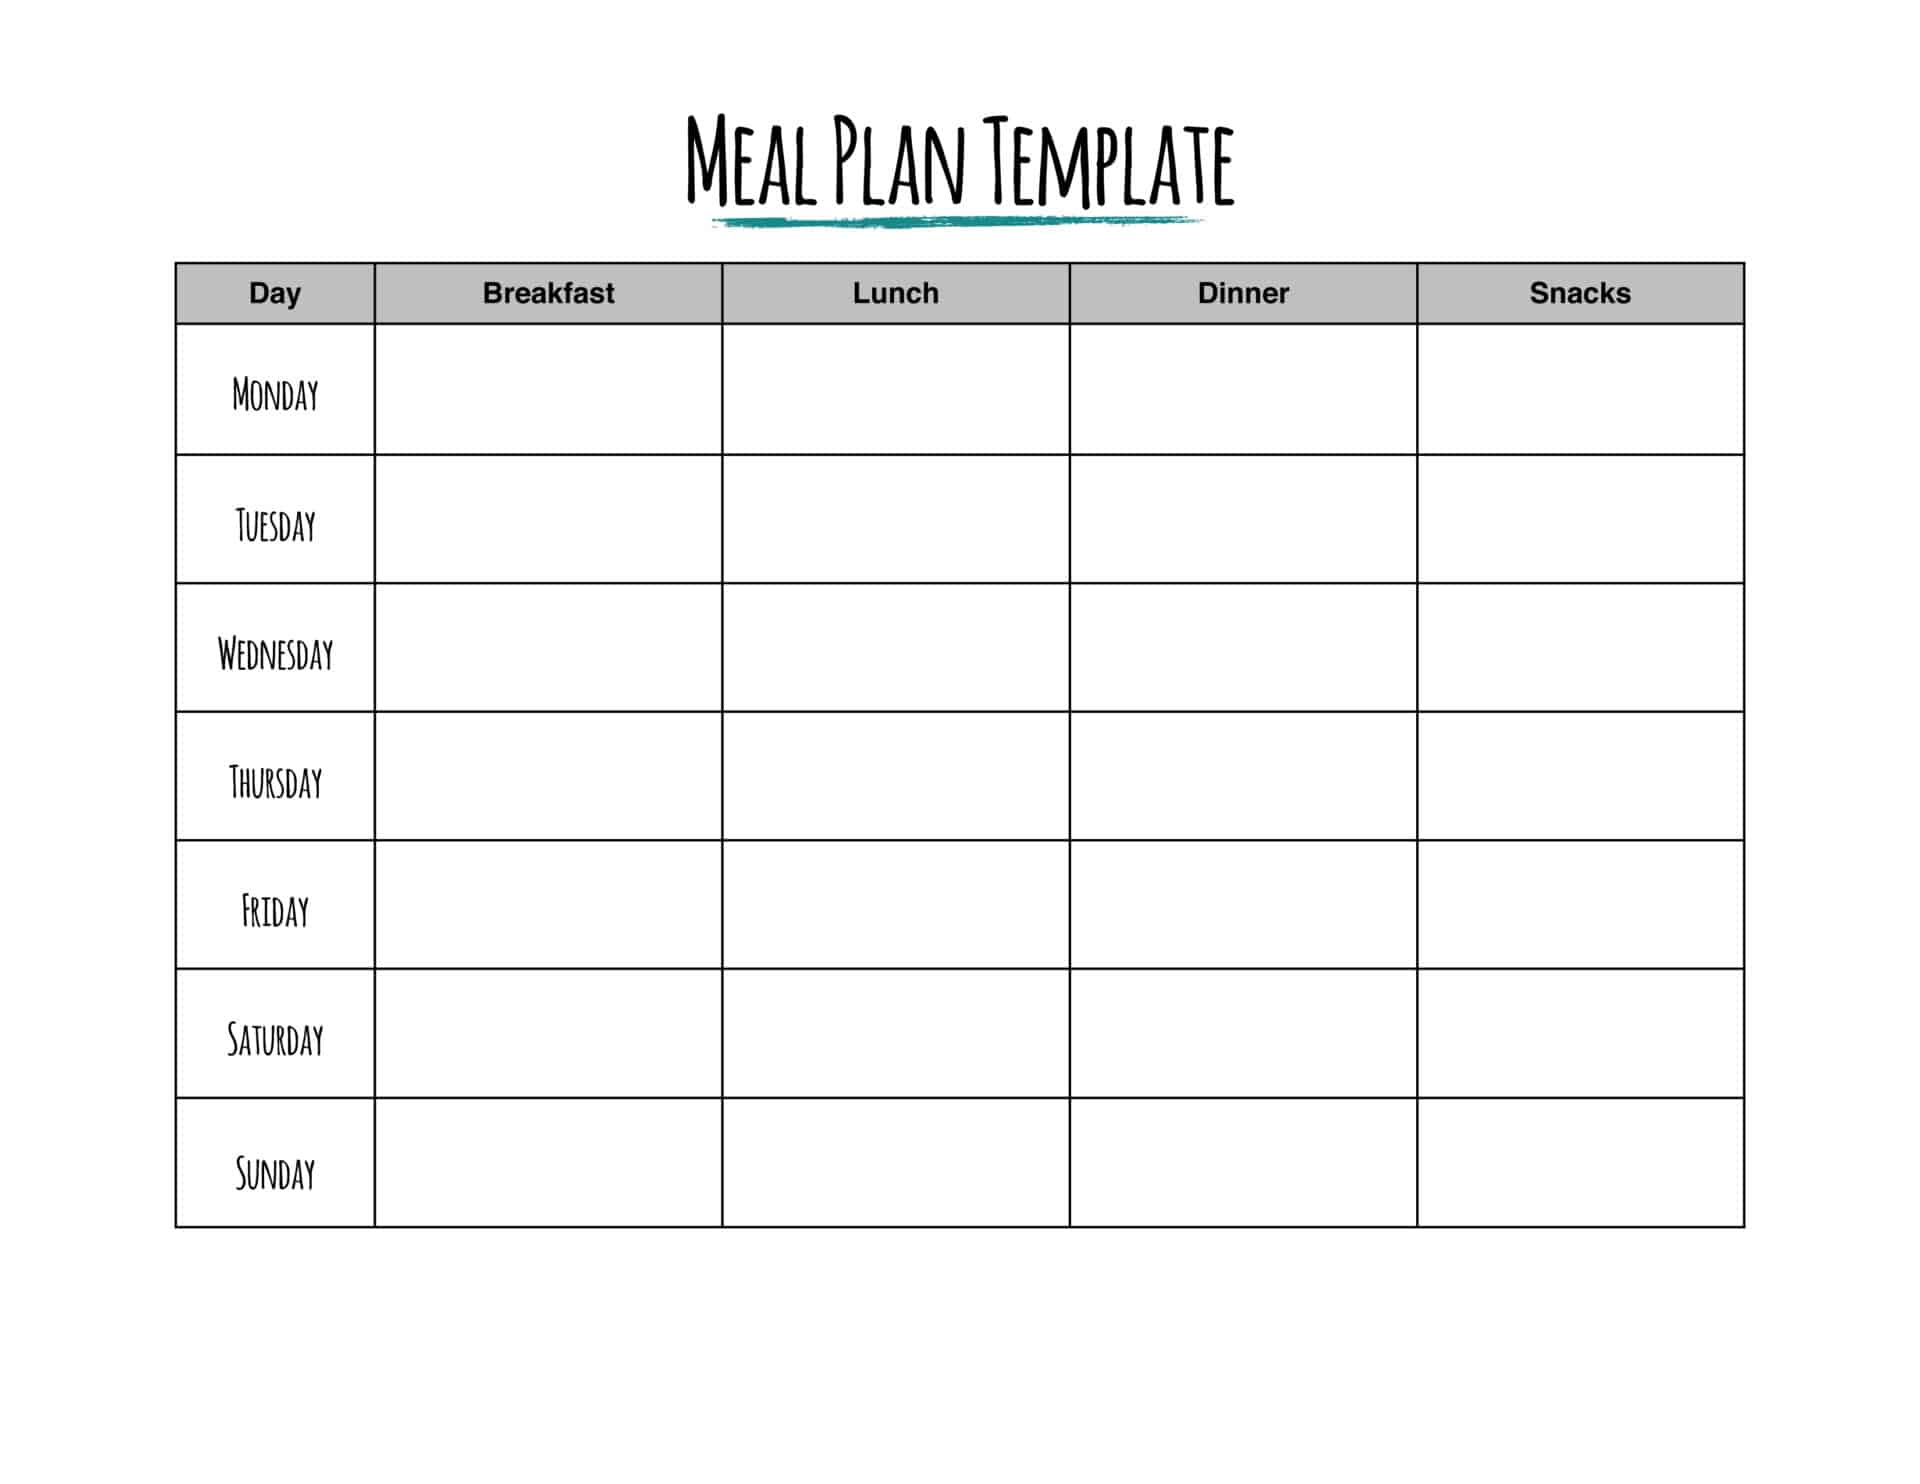 HUNGRY FOR SAVINGS? TRY A MEAL PLAN - From Rags to Reasonable